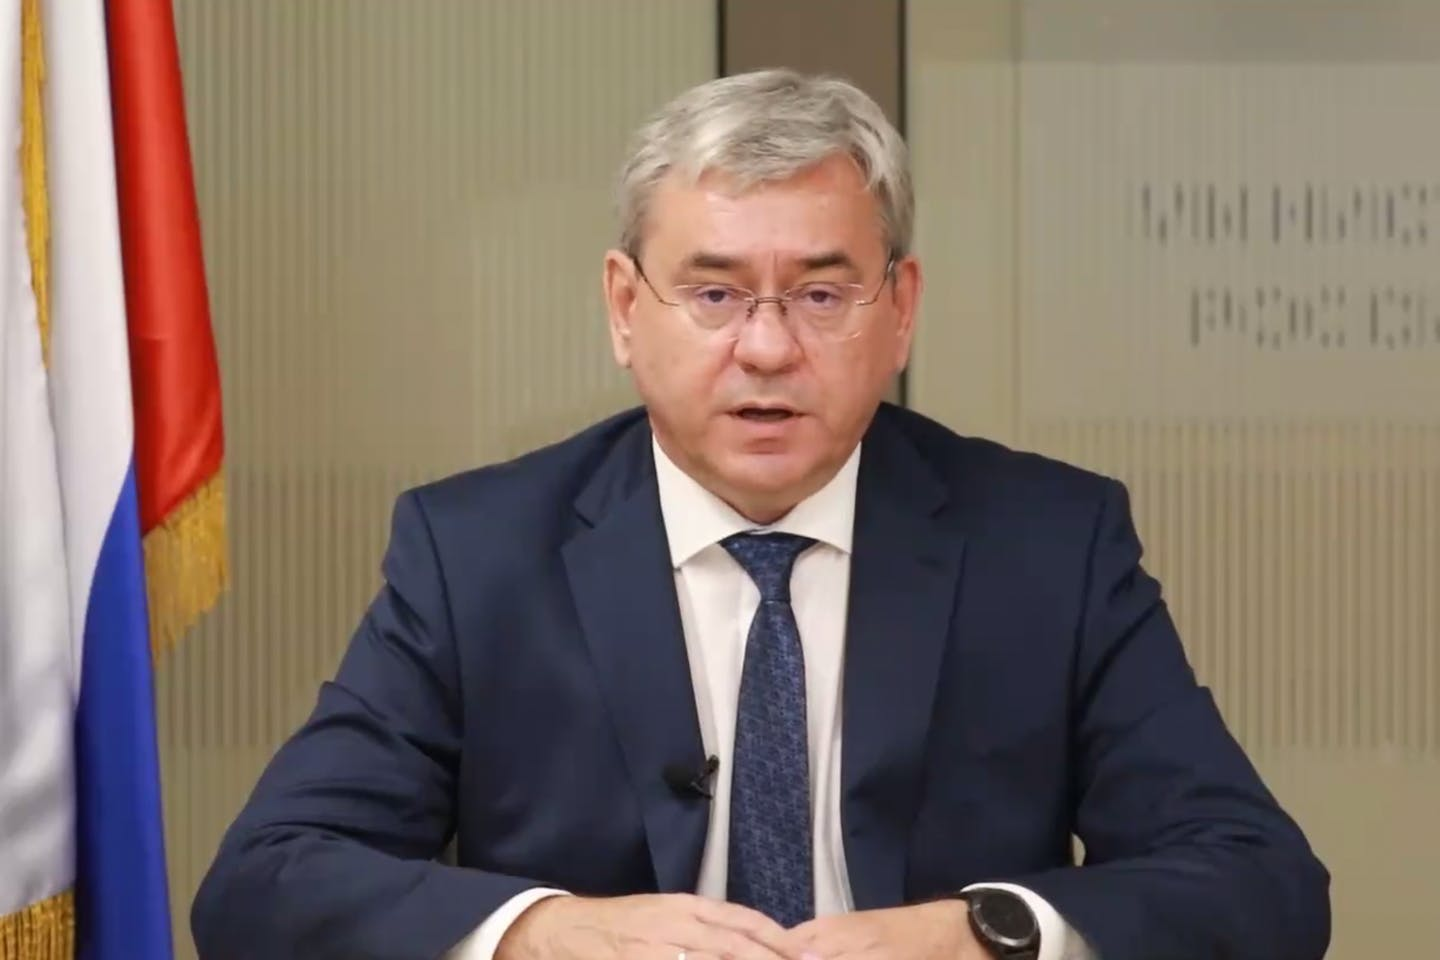 Alexey Kulapin, director general, Russia Energy Agency